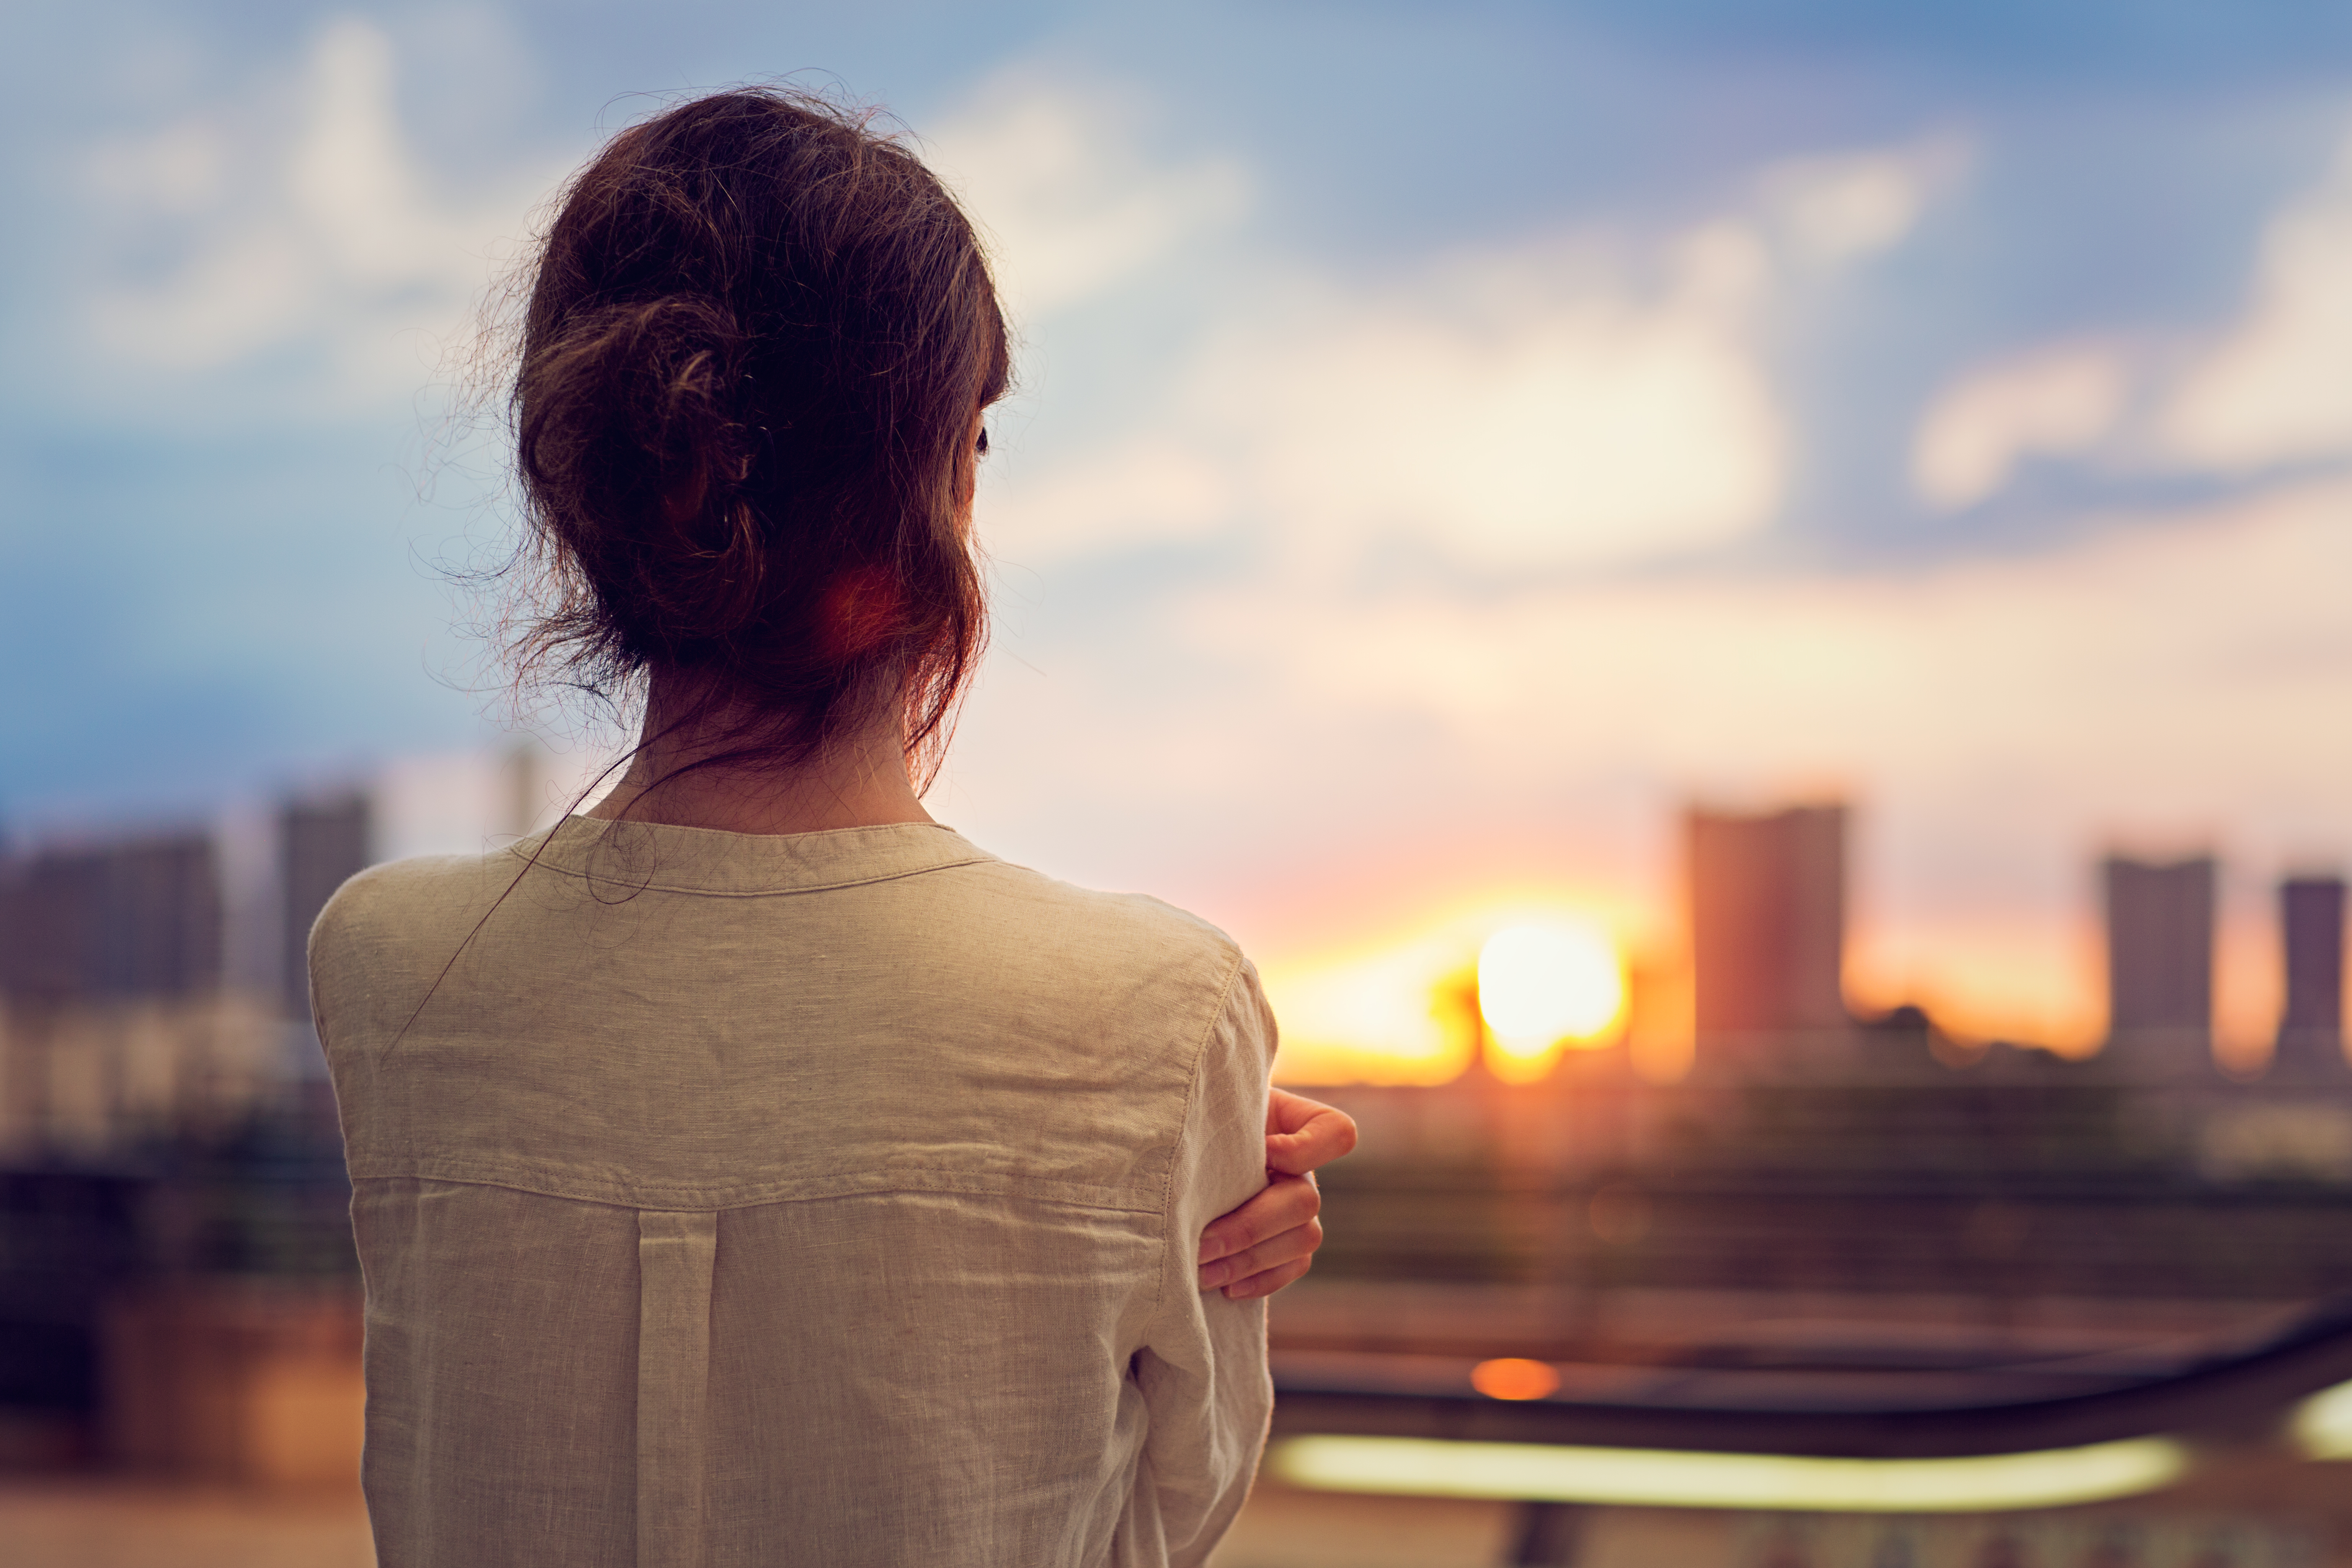 Young-girl-is-watching-sunset-over-Tokyo-541836000_6144x4096